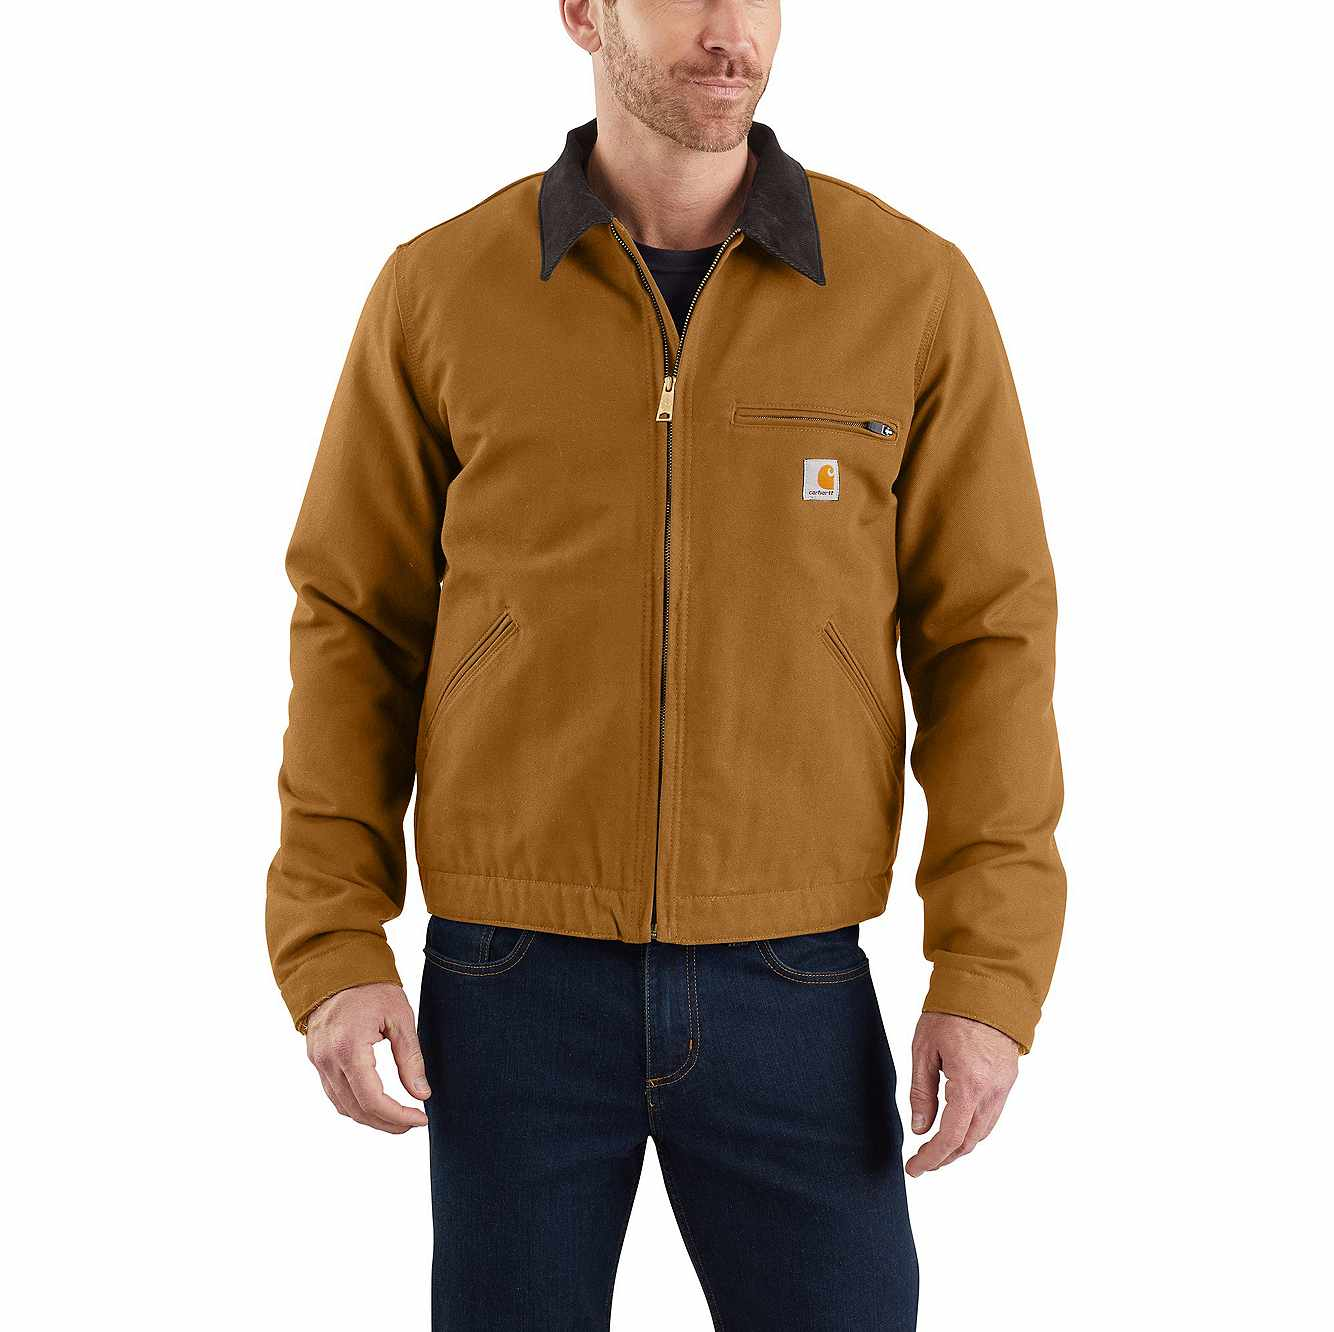 Picture of Detroit Jacket in Carhartt Brown